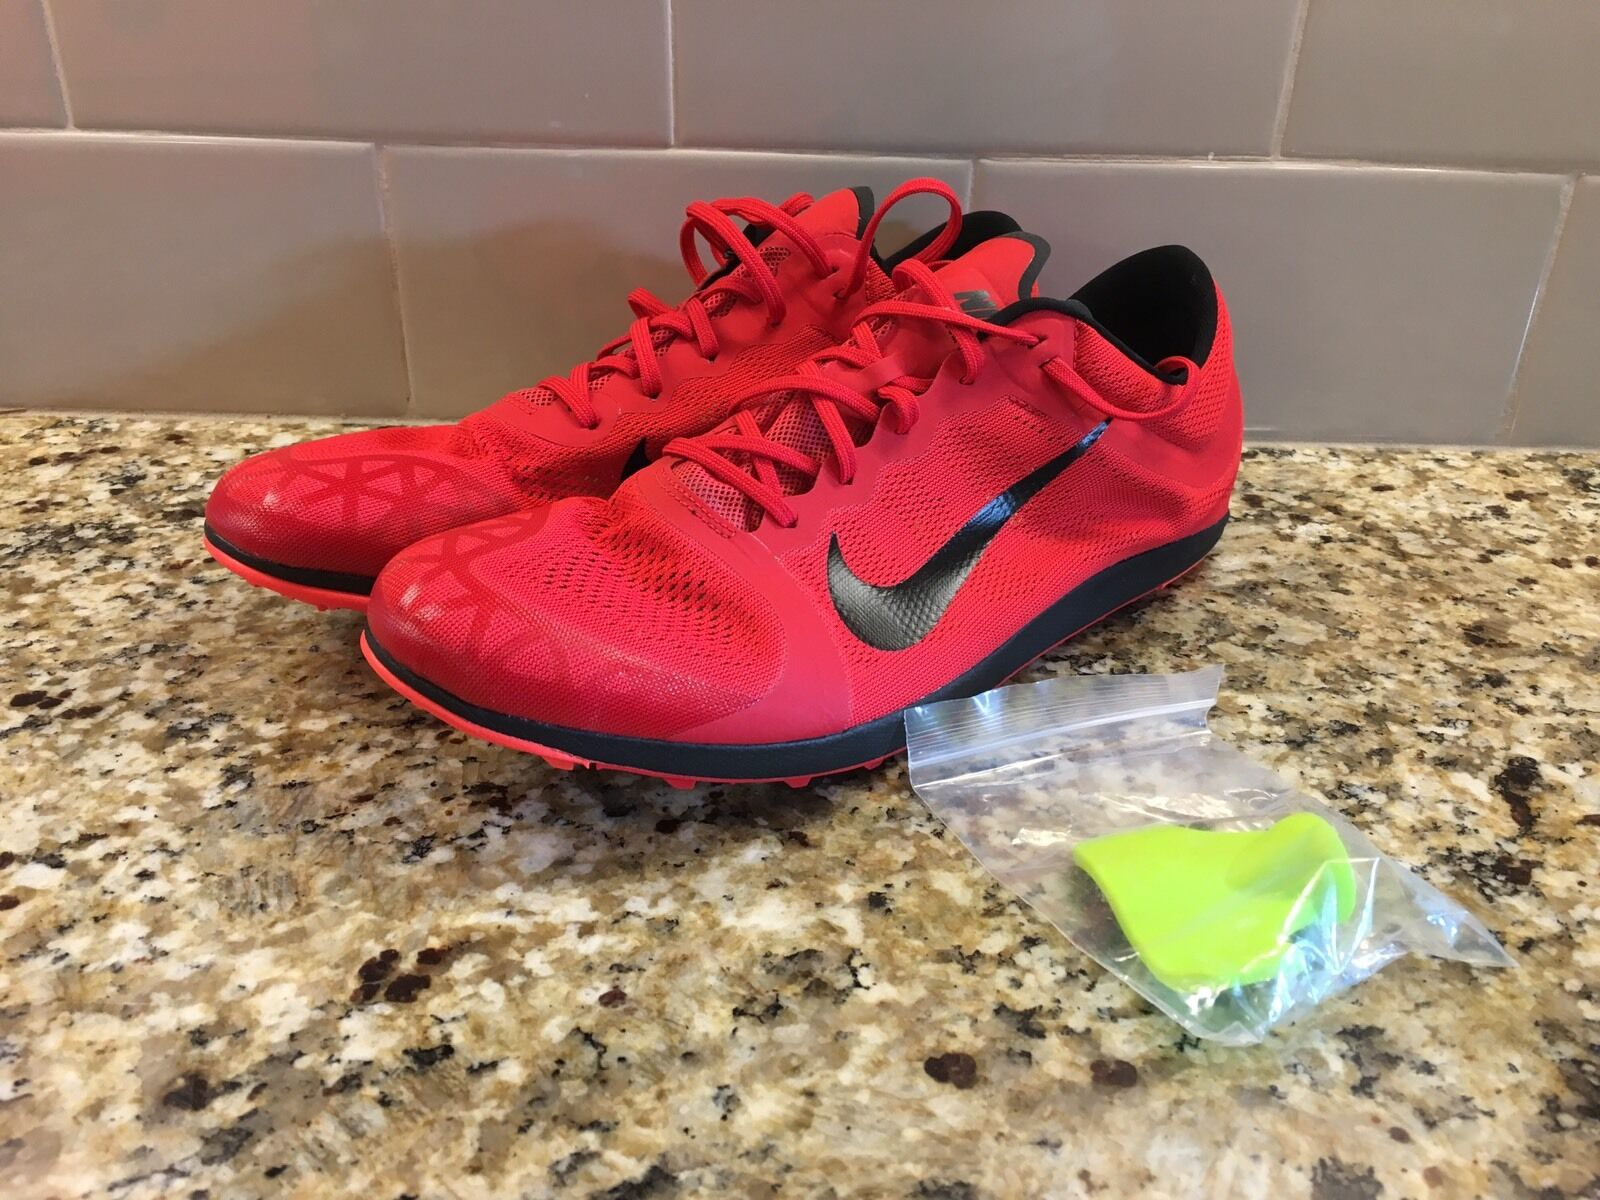 Men's Nike Zoom XC Cross Country Spikes 844132 600 Size Mens 12.5 Womens 14.5